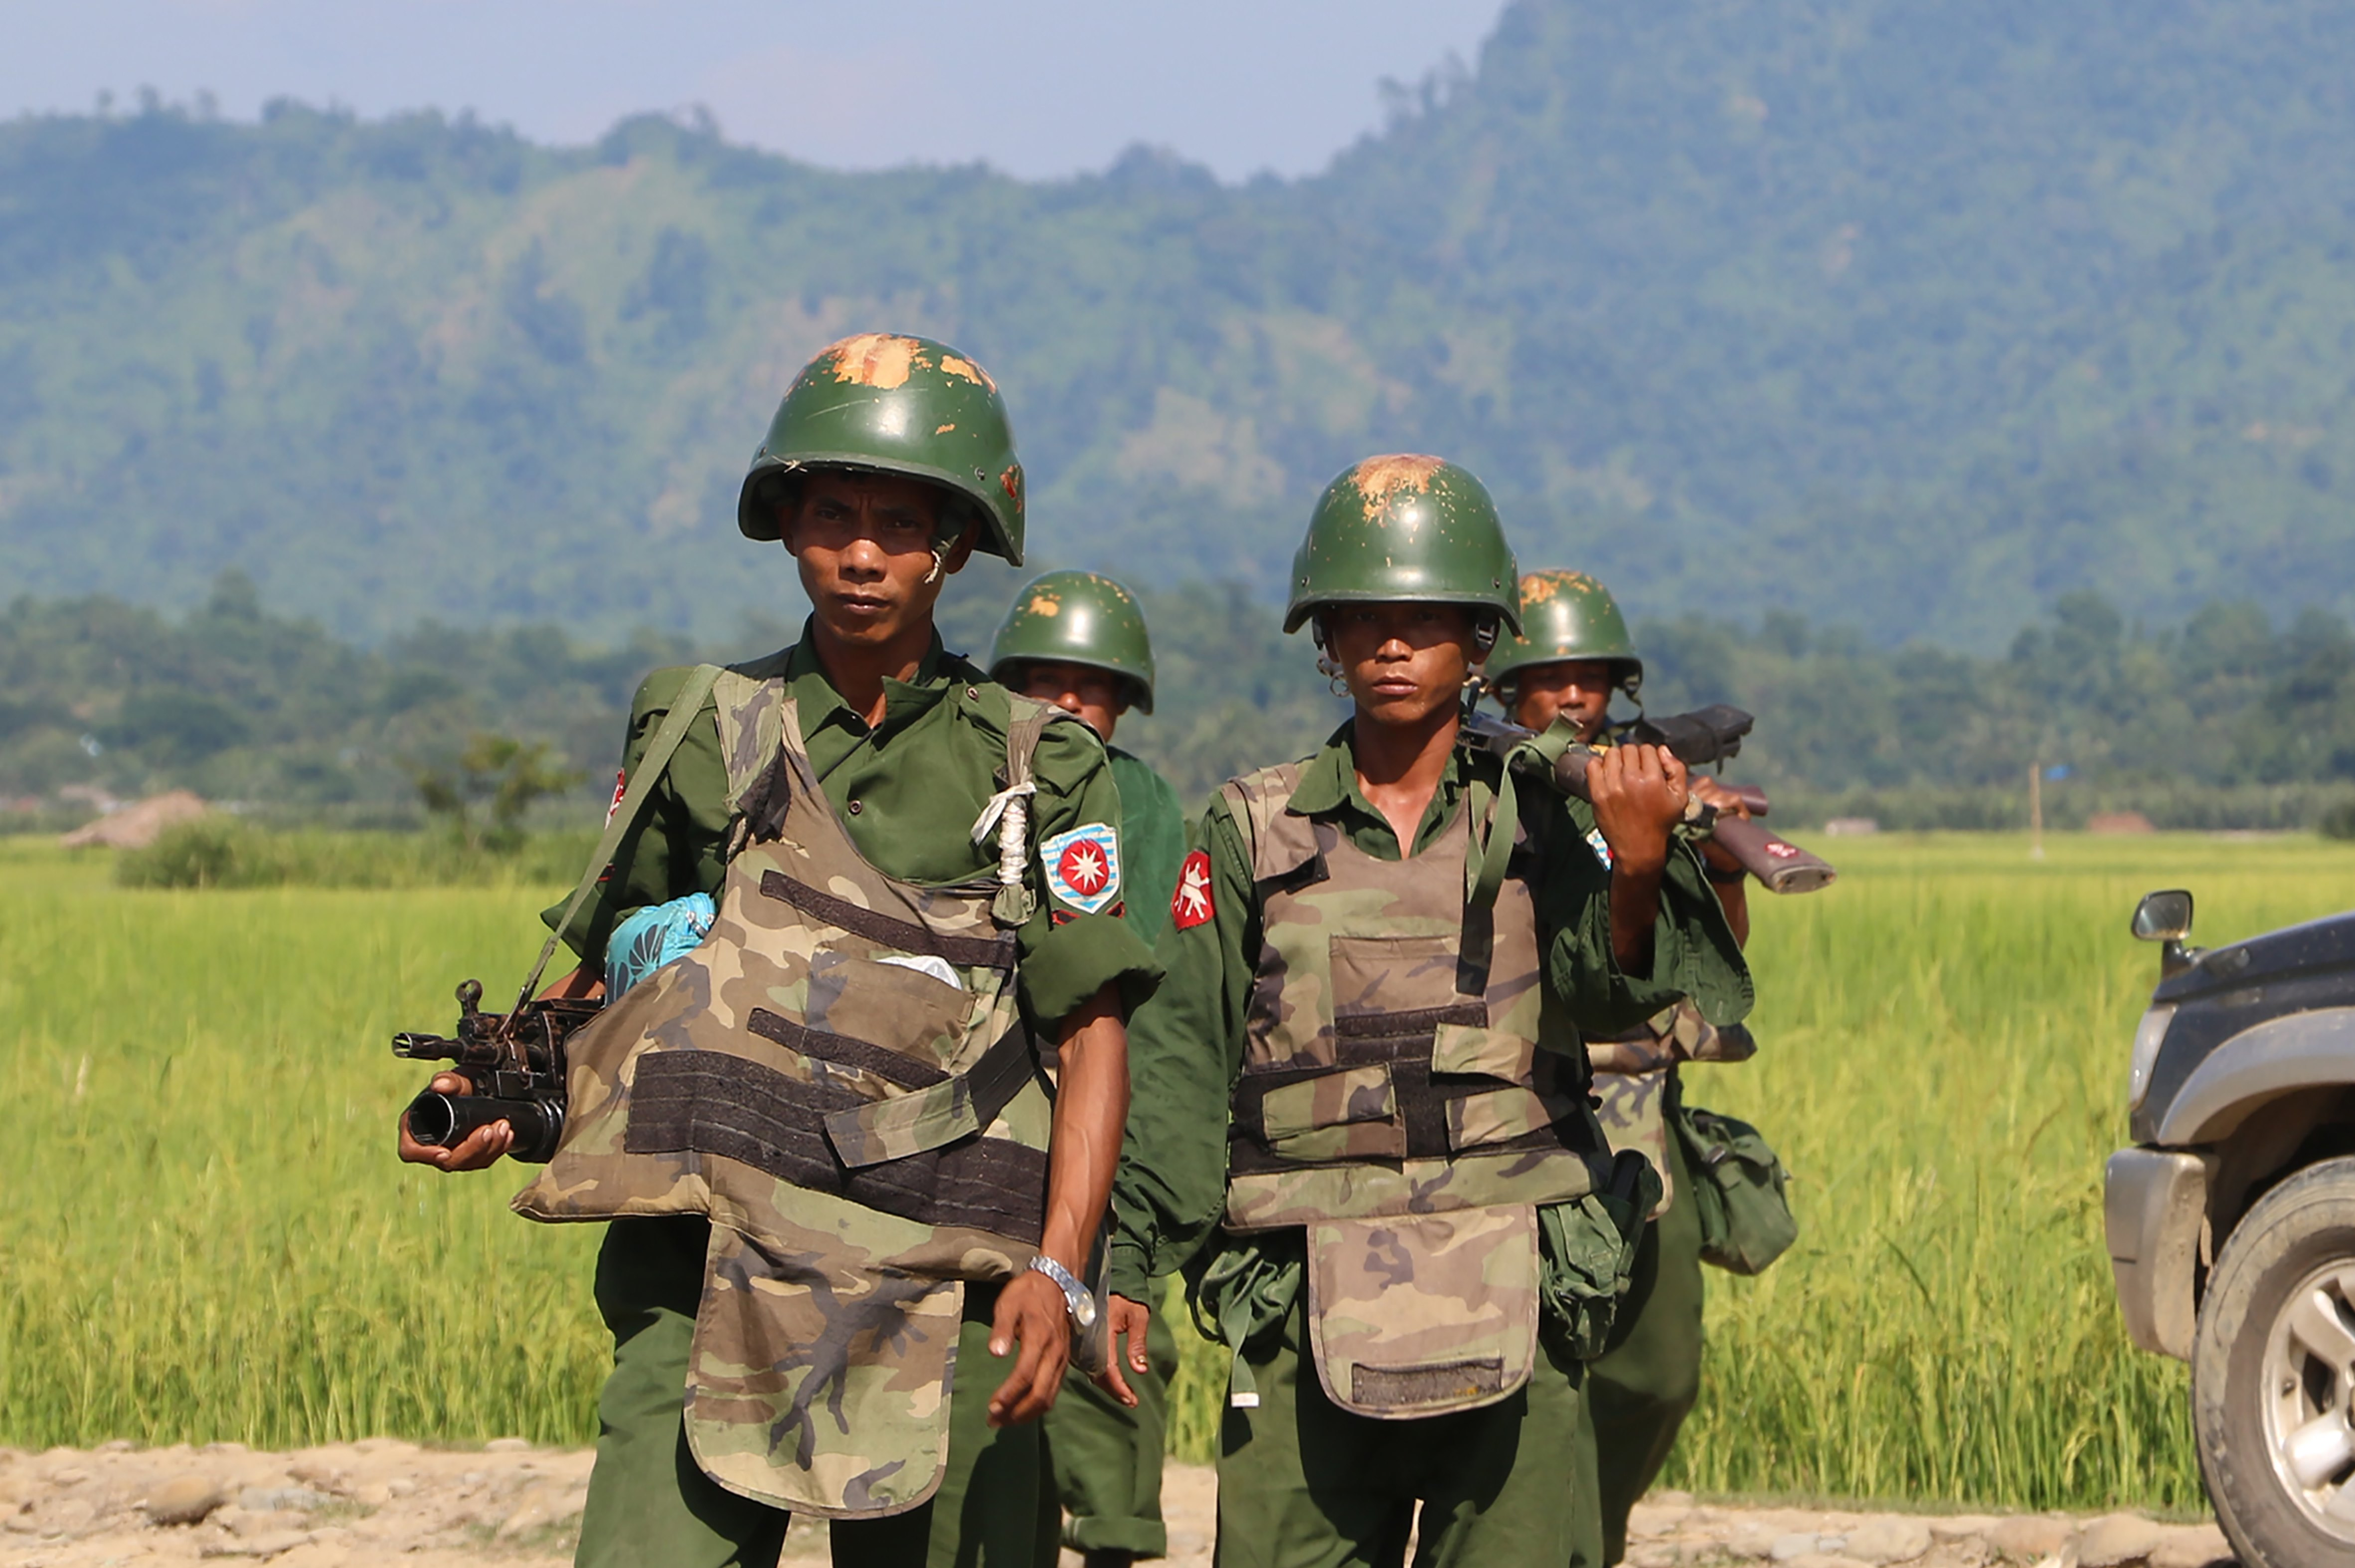 In this photograph taken on October 21, 2016, armed Myanmar soldiers patrol a village in Maungdaw located in Rakhine State as security operation continue following the October 9, 2016 attacks by armed militant Muslims.